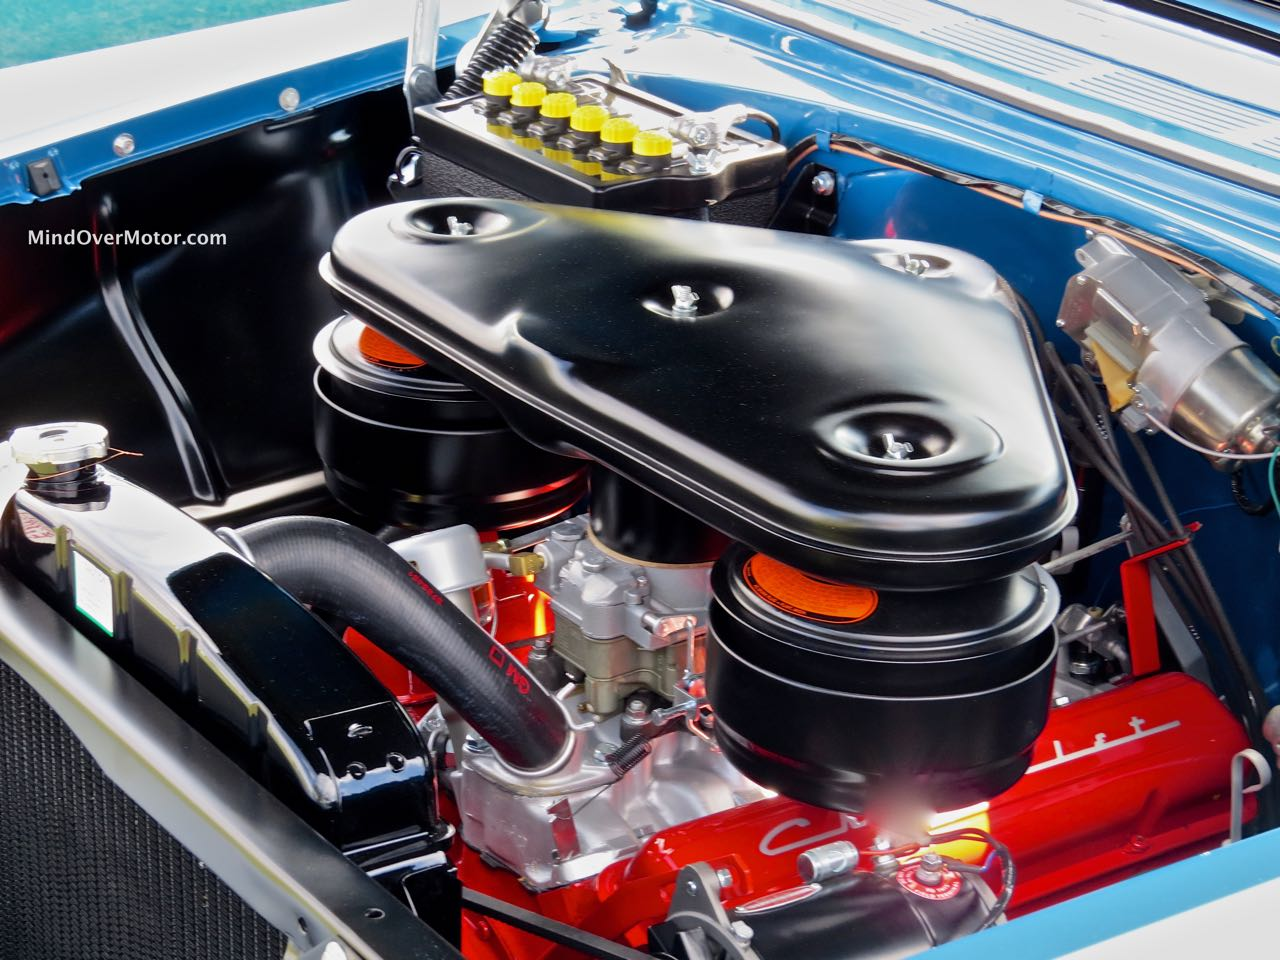 1956 Chevrolet Bel Air Convertible Engine